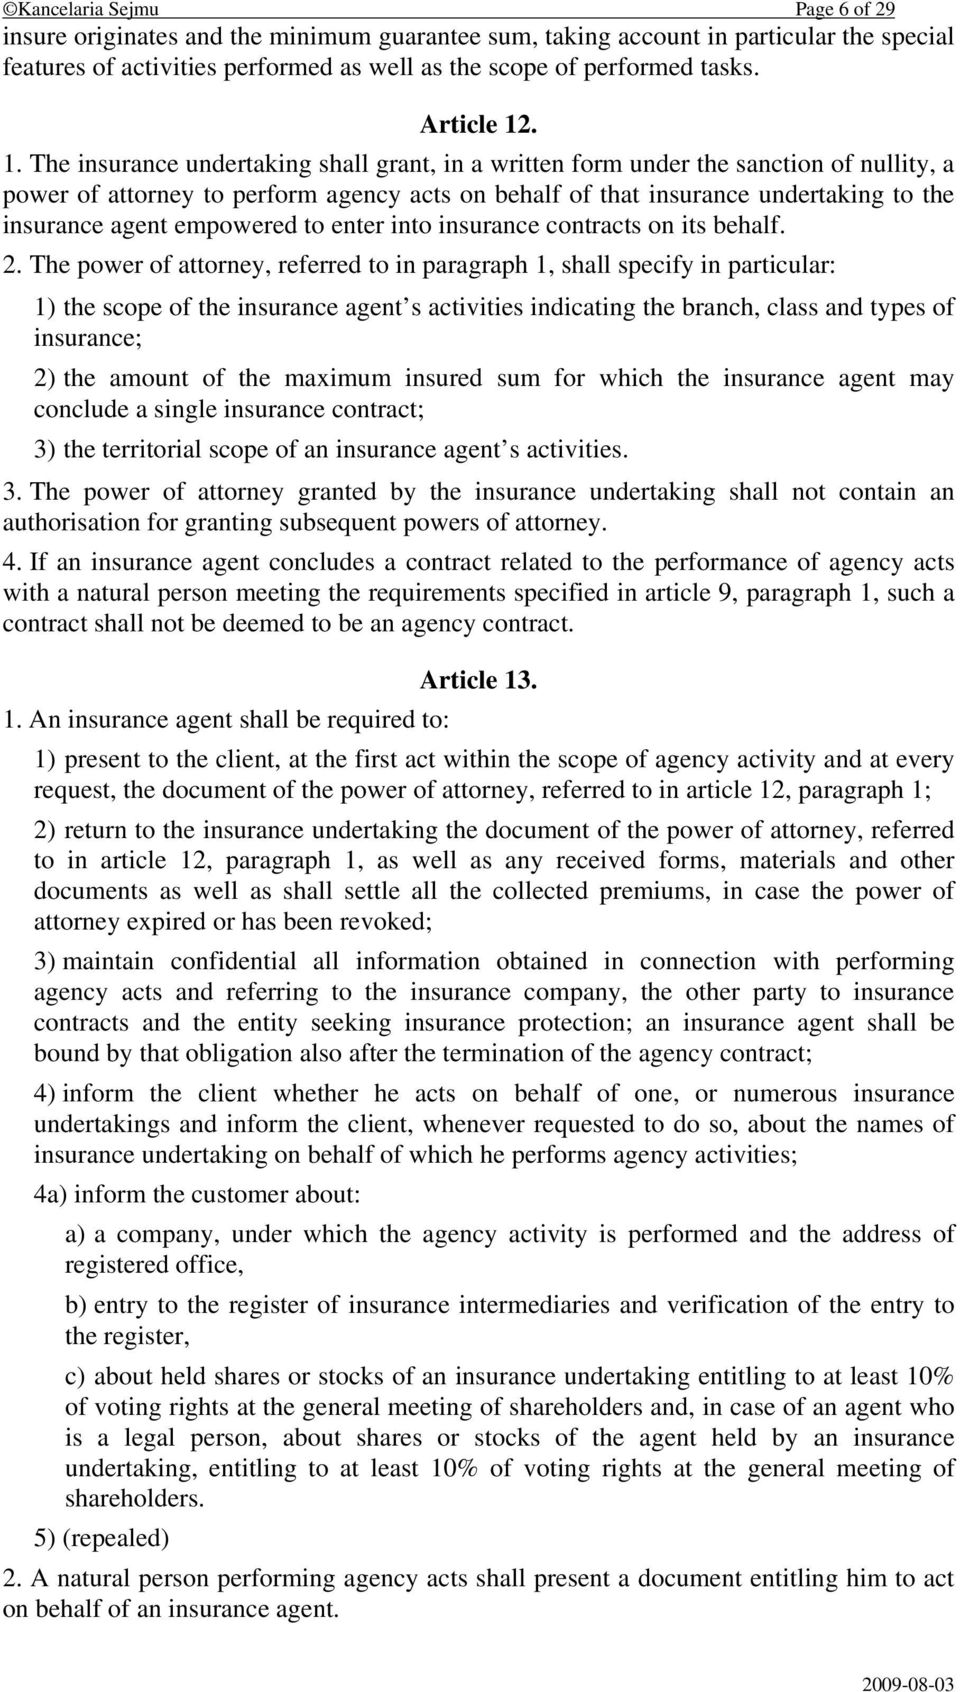 . 1. The insurance undertaking shall grant, in a written form under the sanction of nullity, a power of attorney to perform agency acts on behalf of that insurance undertaking to the insurance agent